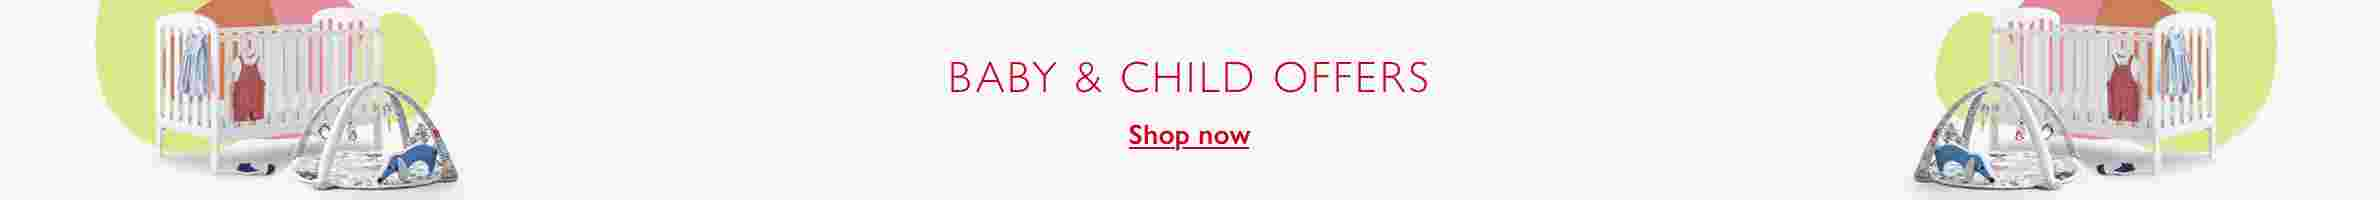 Baby & Child Easter Offers